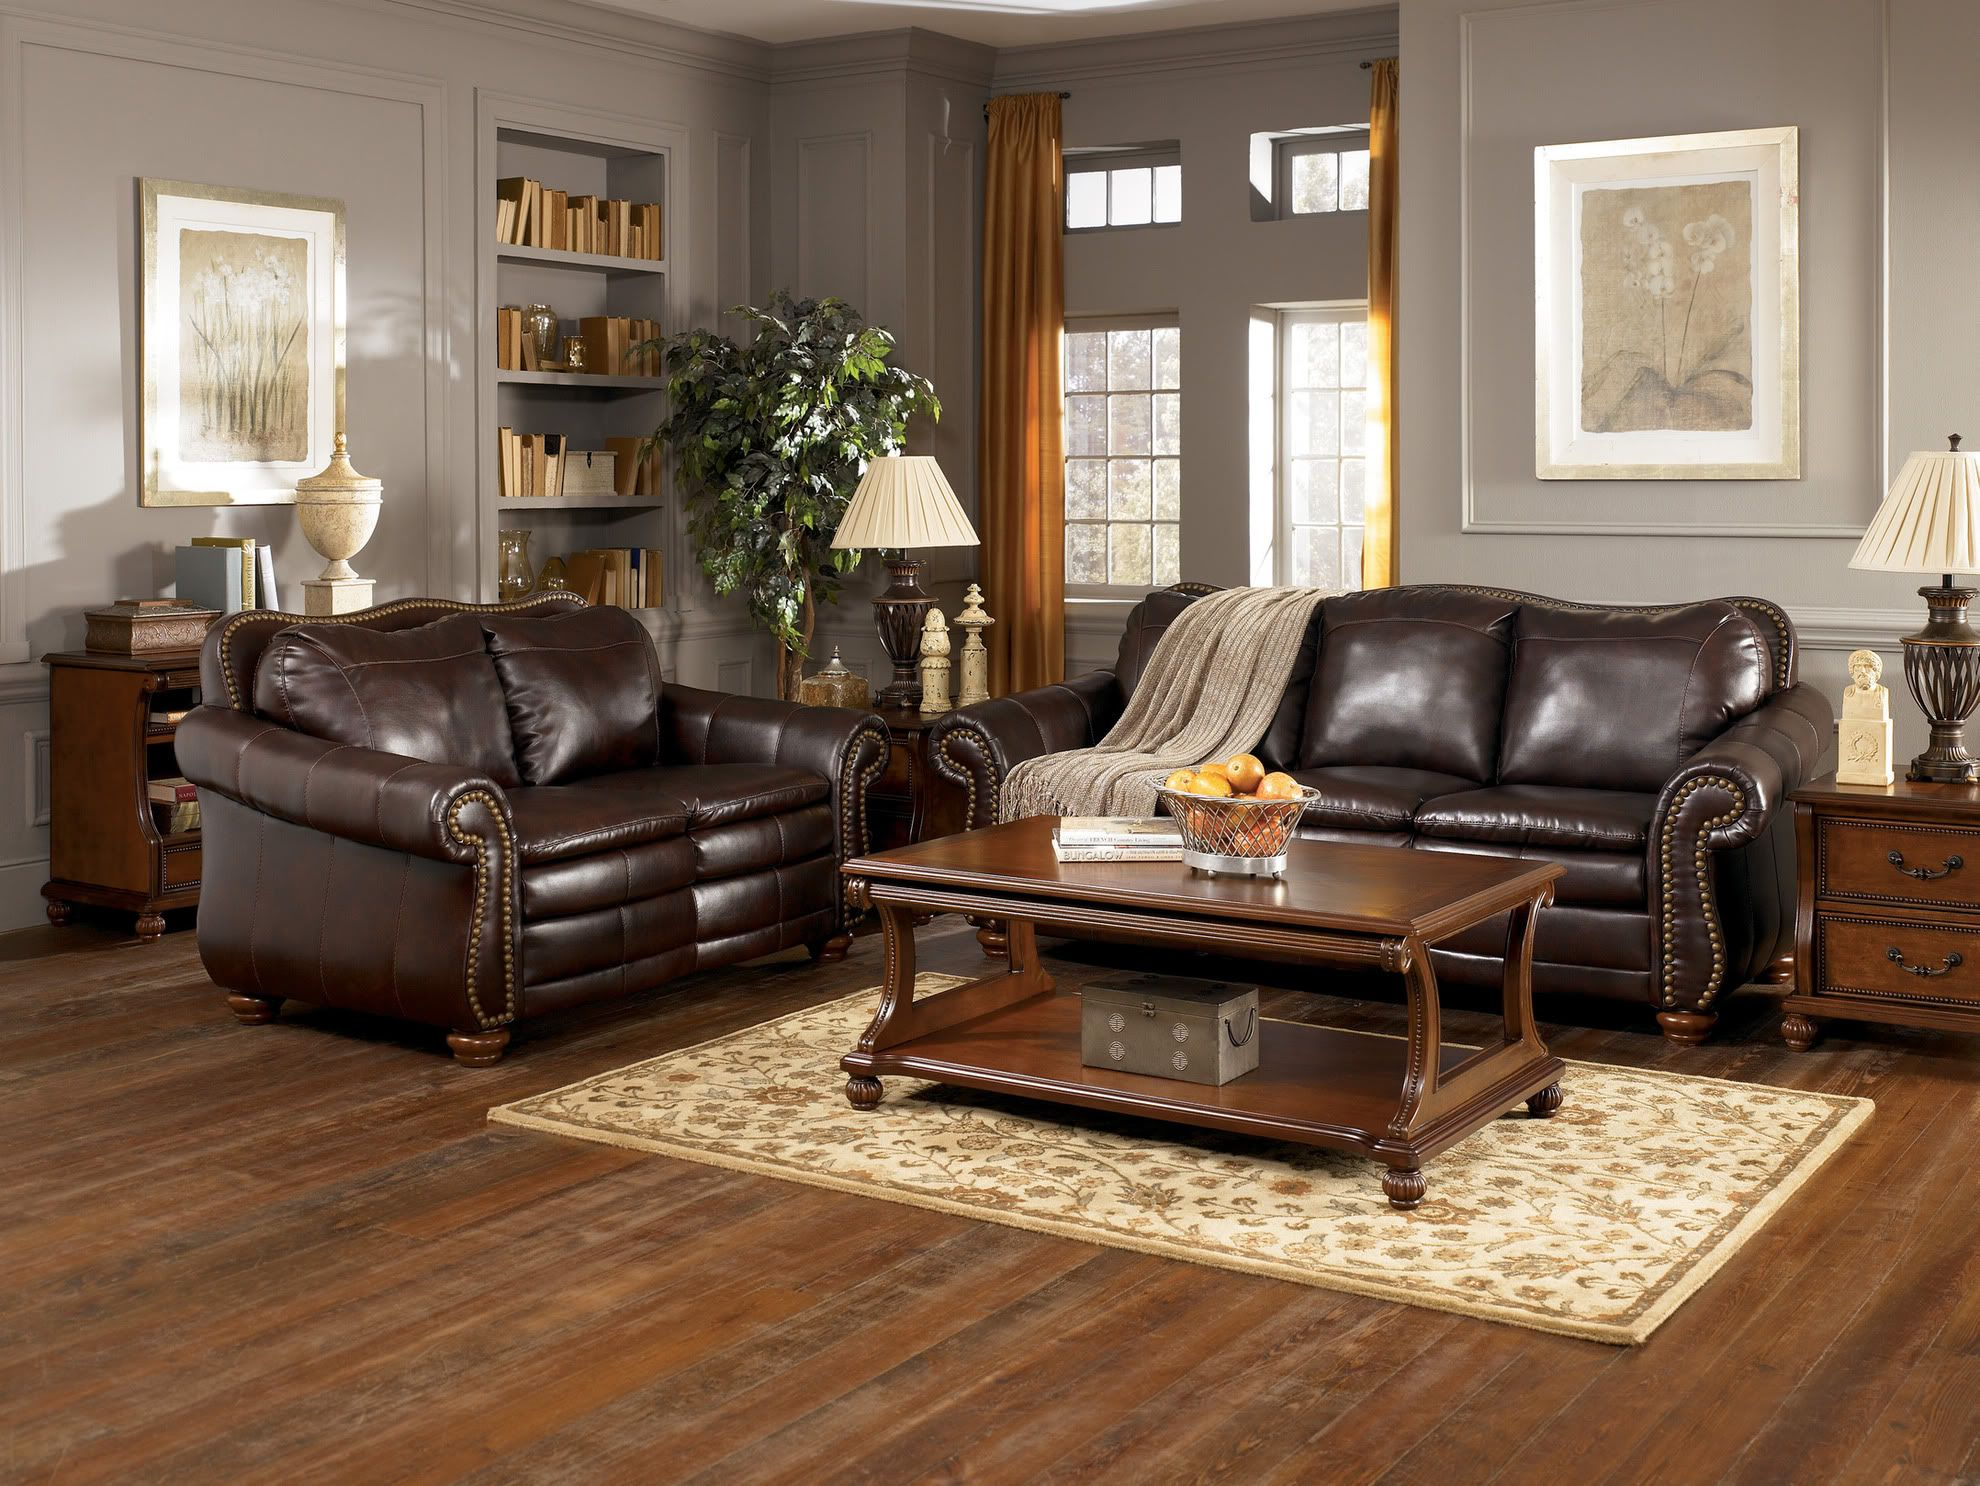 Likeness Of Rustic Living Room Ideas Brown Furniture Living Room